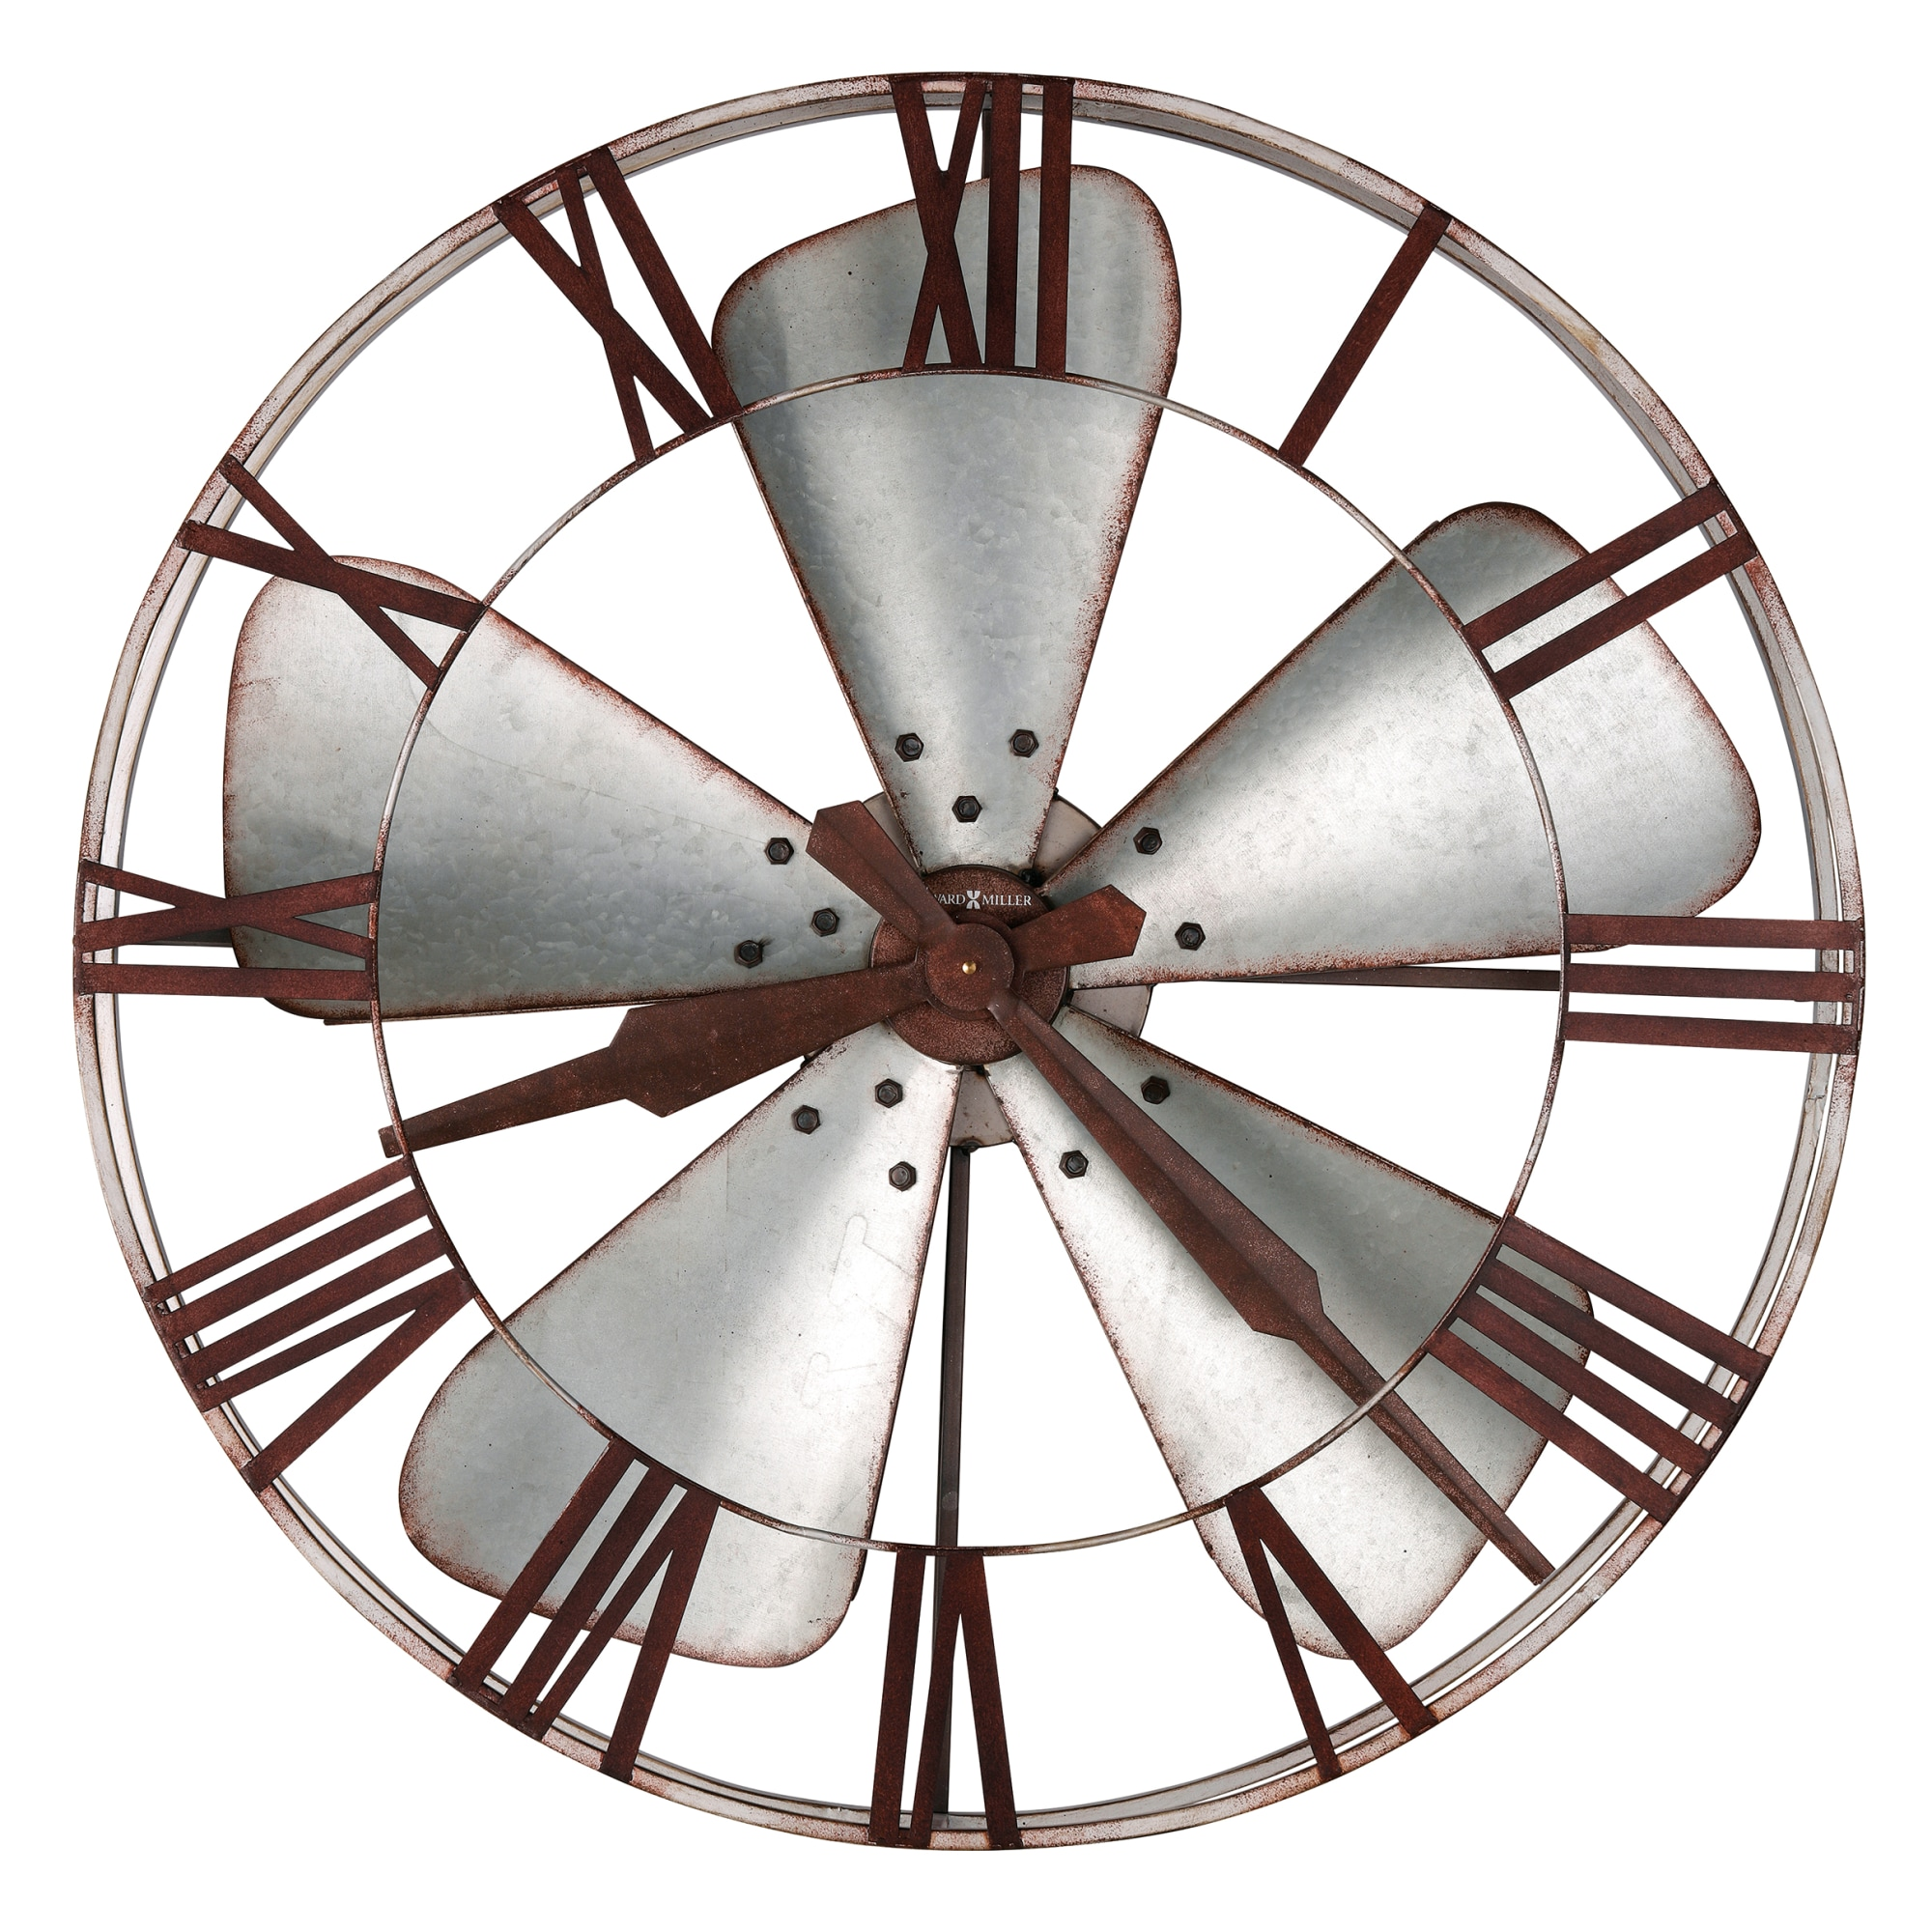 Image for 625-723 Mill Shop Gallery Wall Clock from Howard Miller Official Website